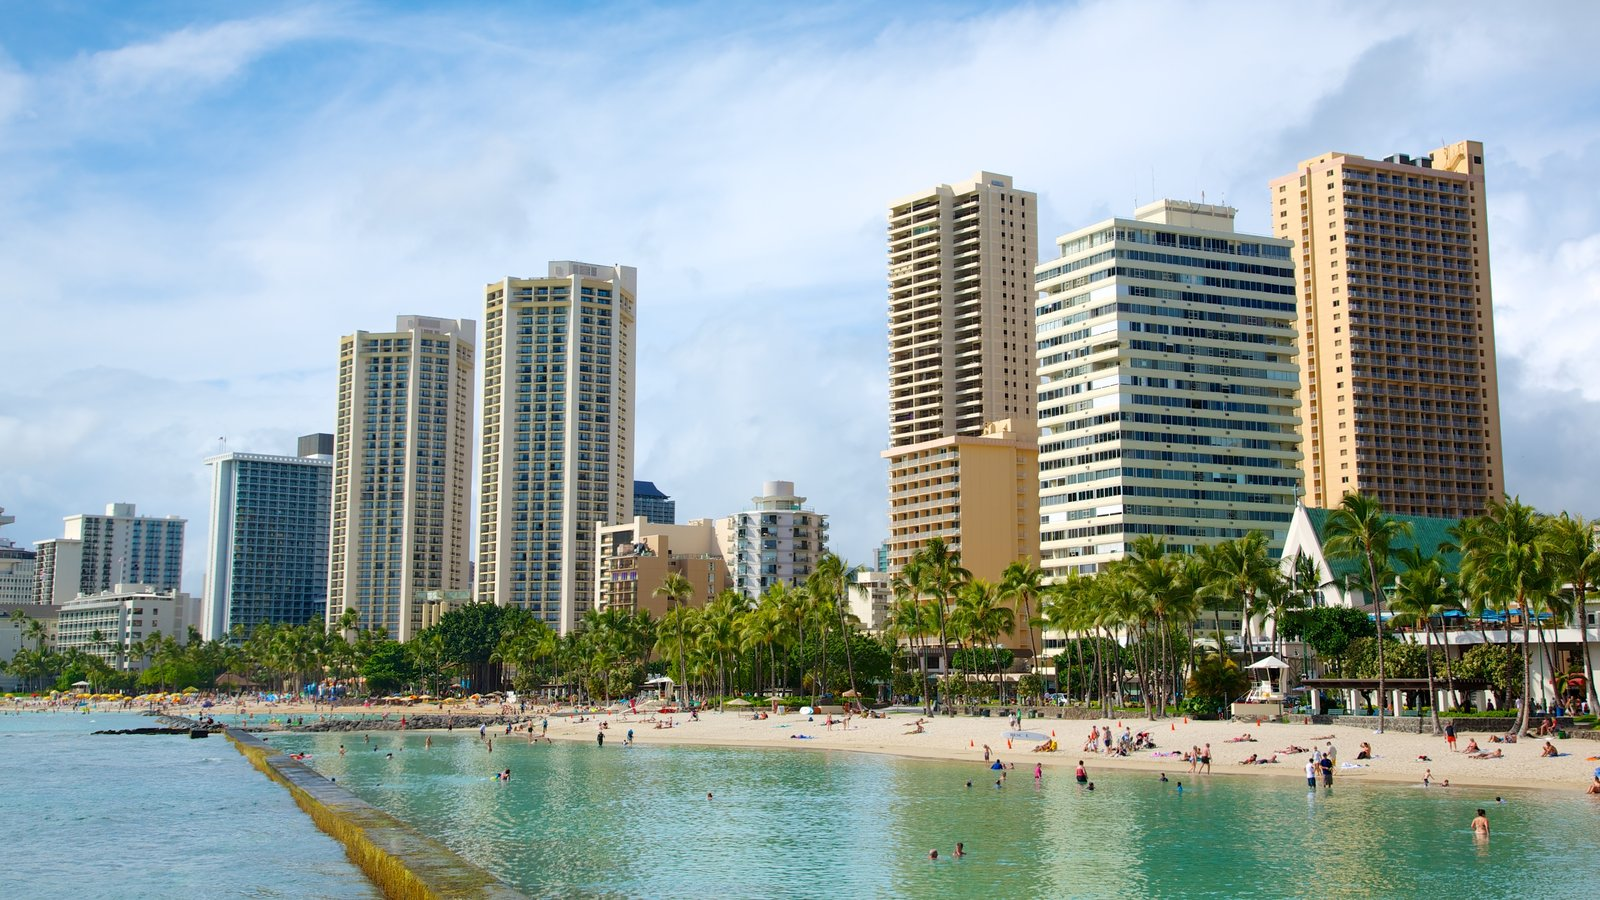 Honolulu showing a coastal town, tropical scenes and a city